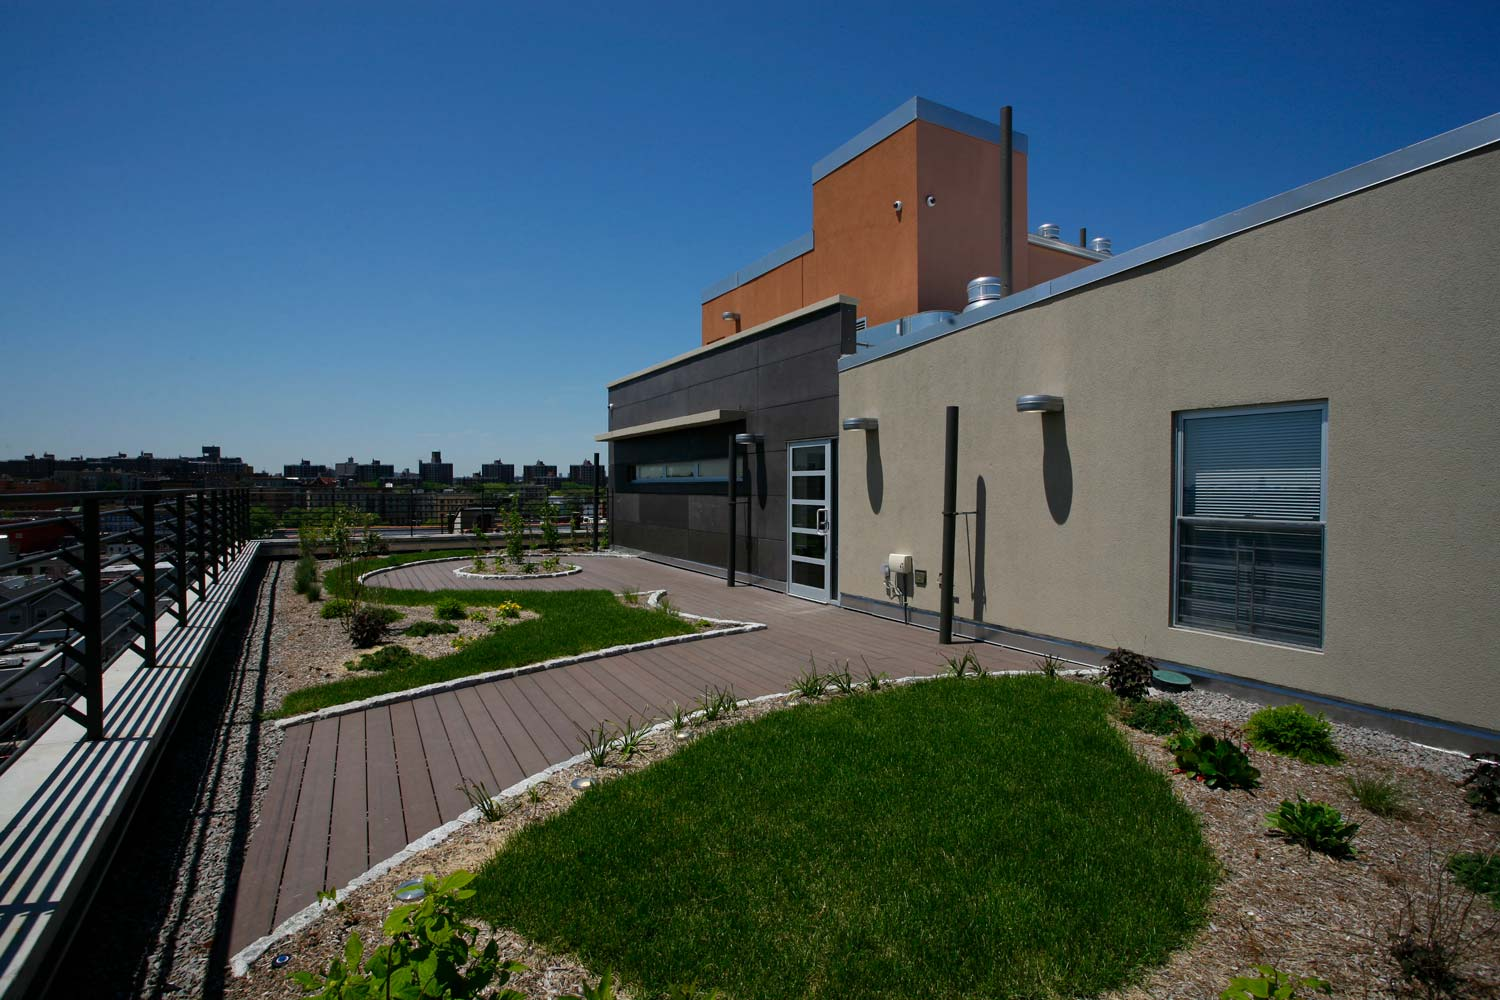 OCV designed several levels of green spaces, including two rooftop terraces.